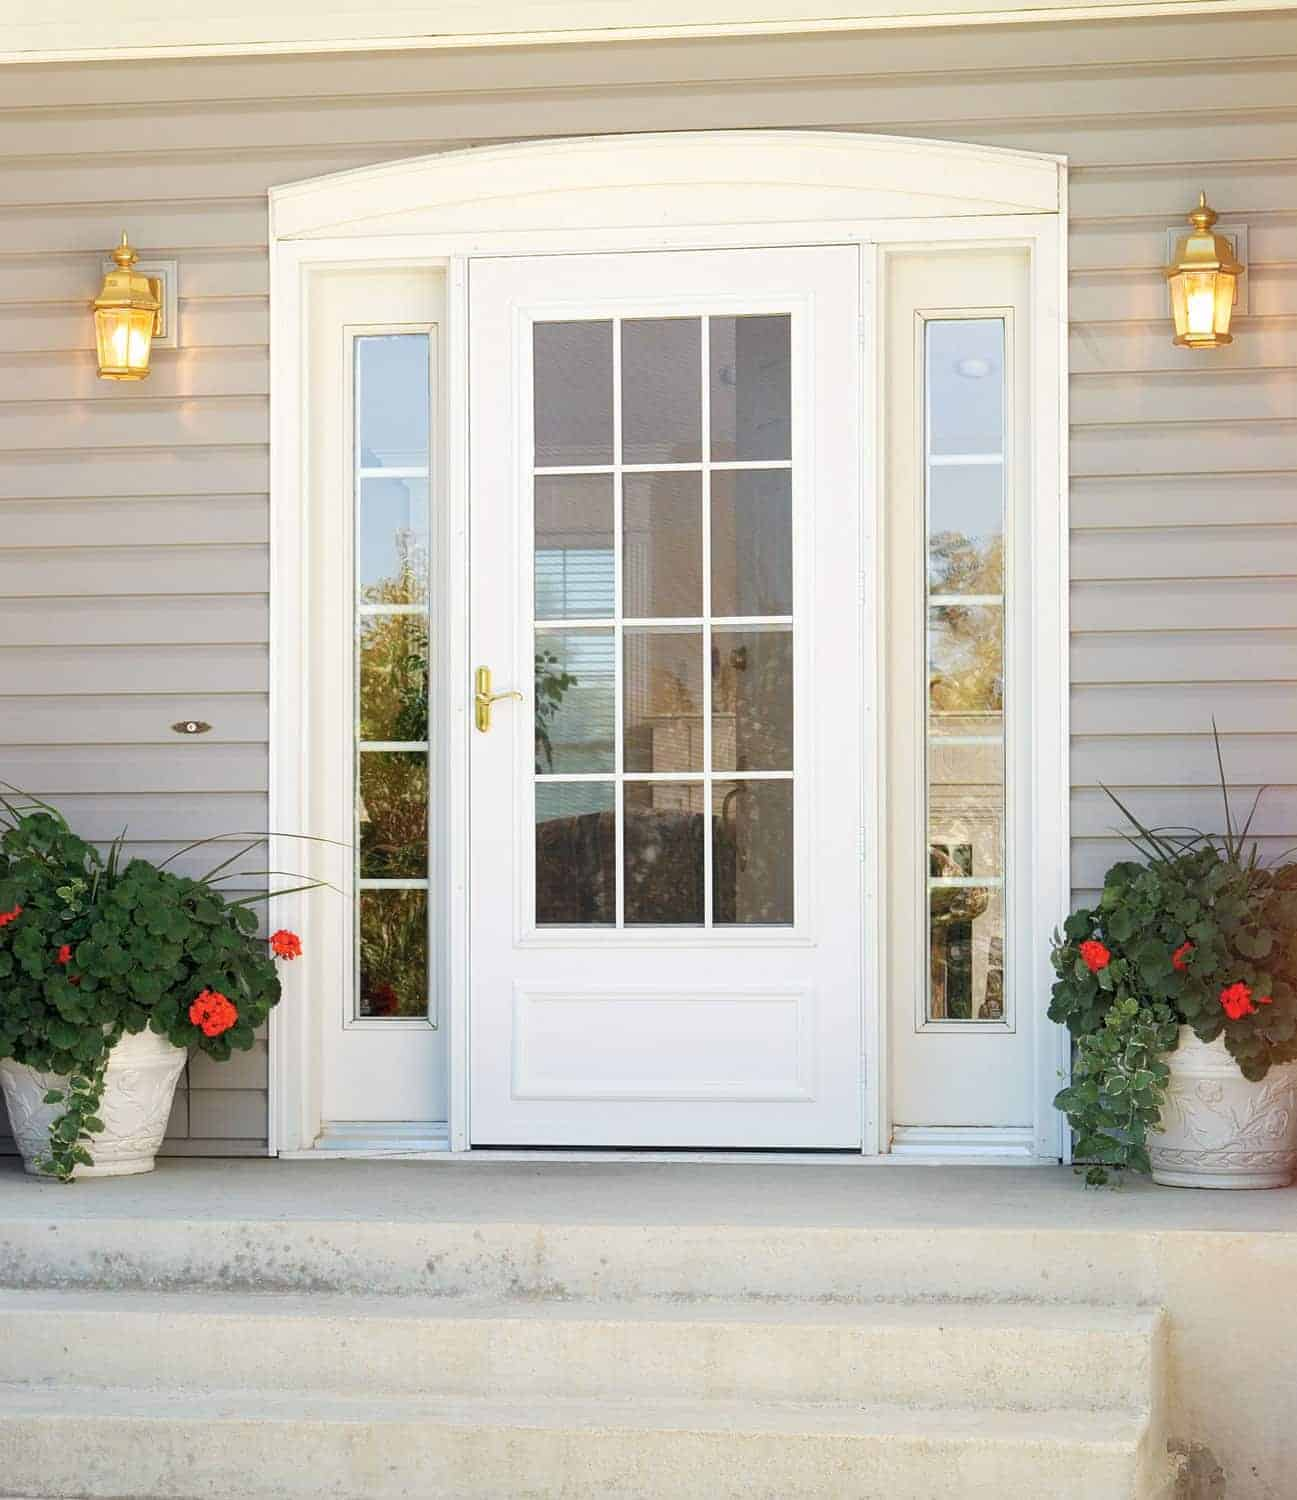 Chicago Replacement Storm Doors Custom Replacement Storm